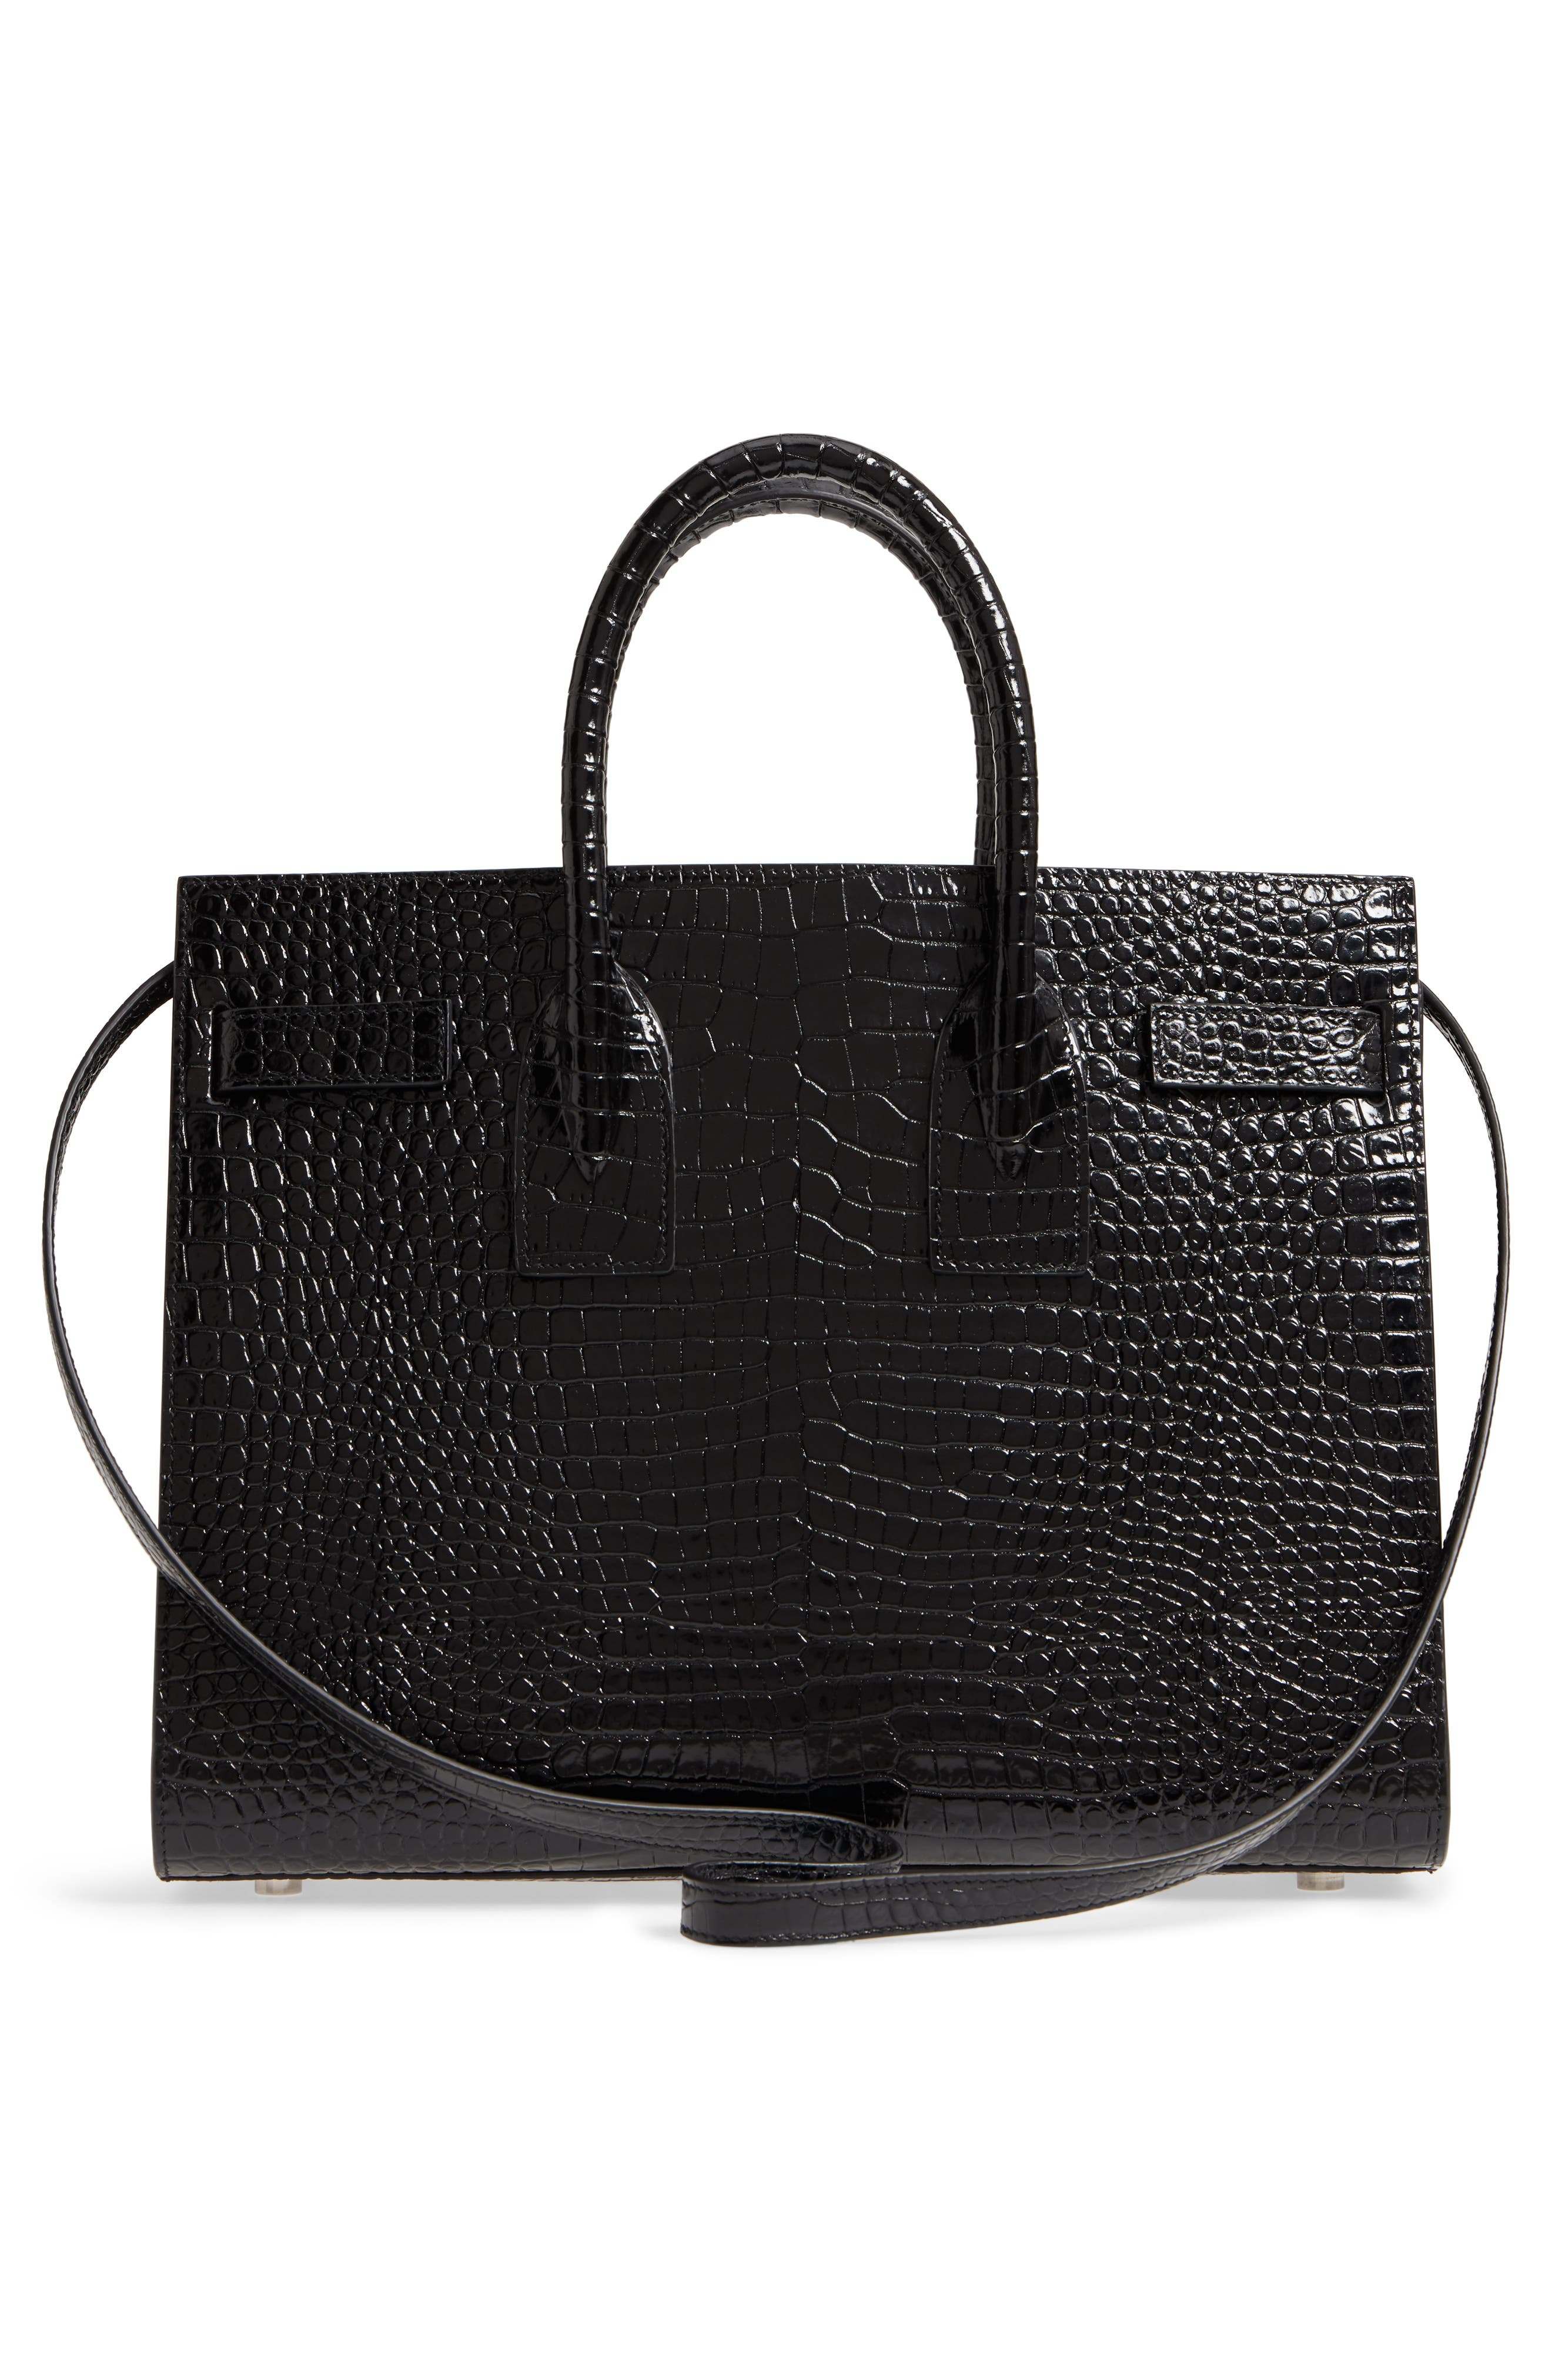 Small Sac de Jour Croc Embossed Calfskin Leather Tote,                             Alternate thumbnail 3, color,                             NERO/ NERO